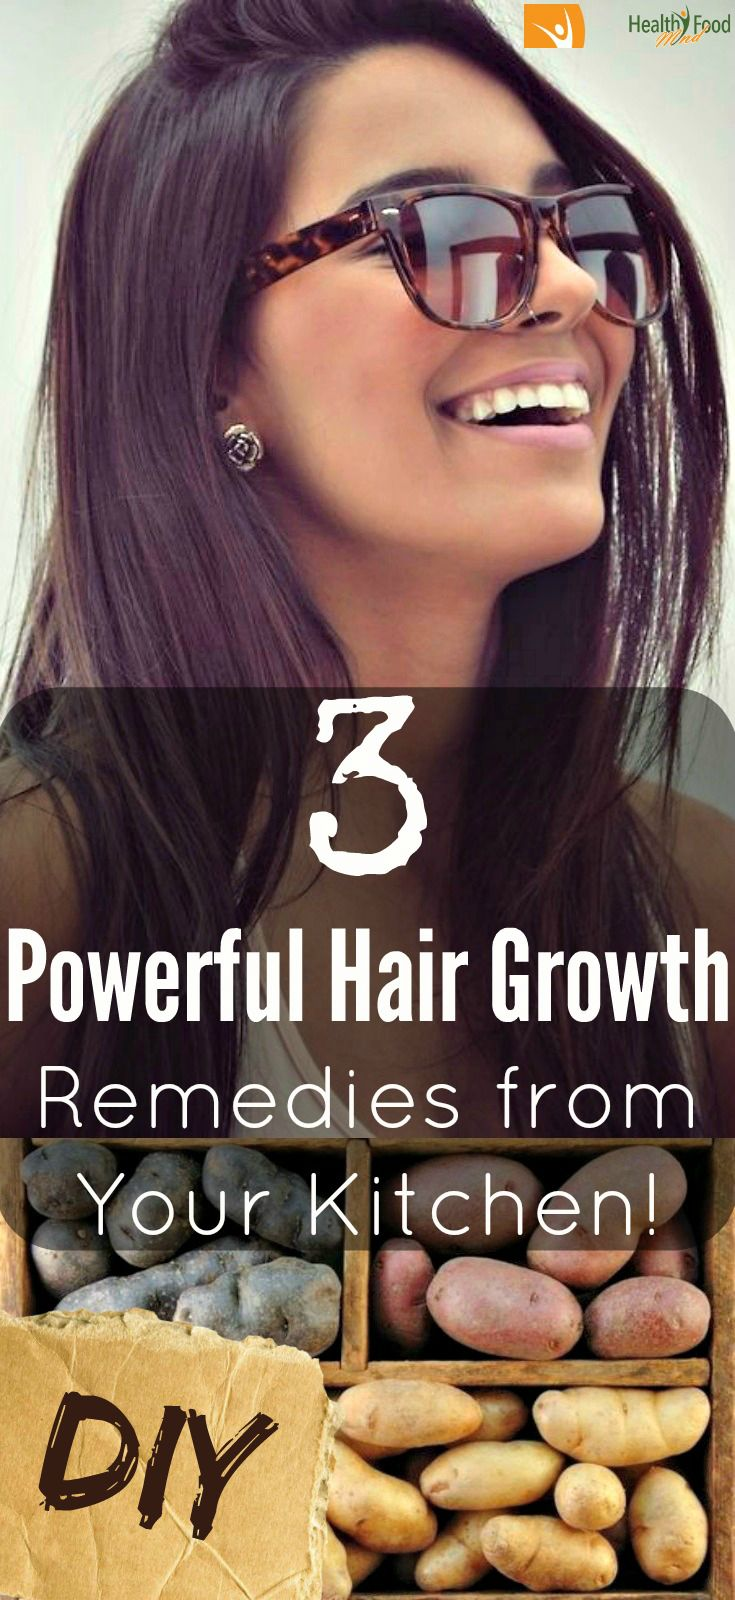 Powerful Hair Growth Remedies from Your Kitchen